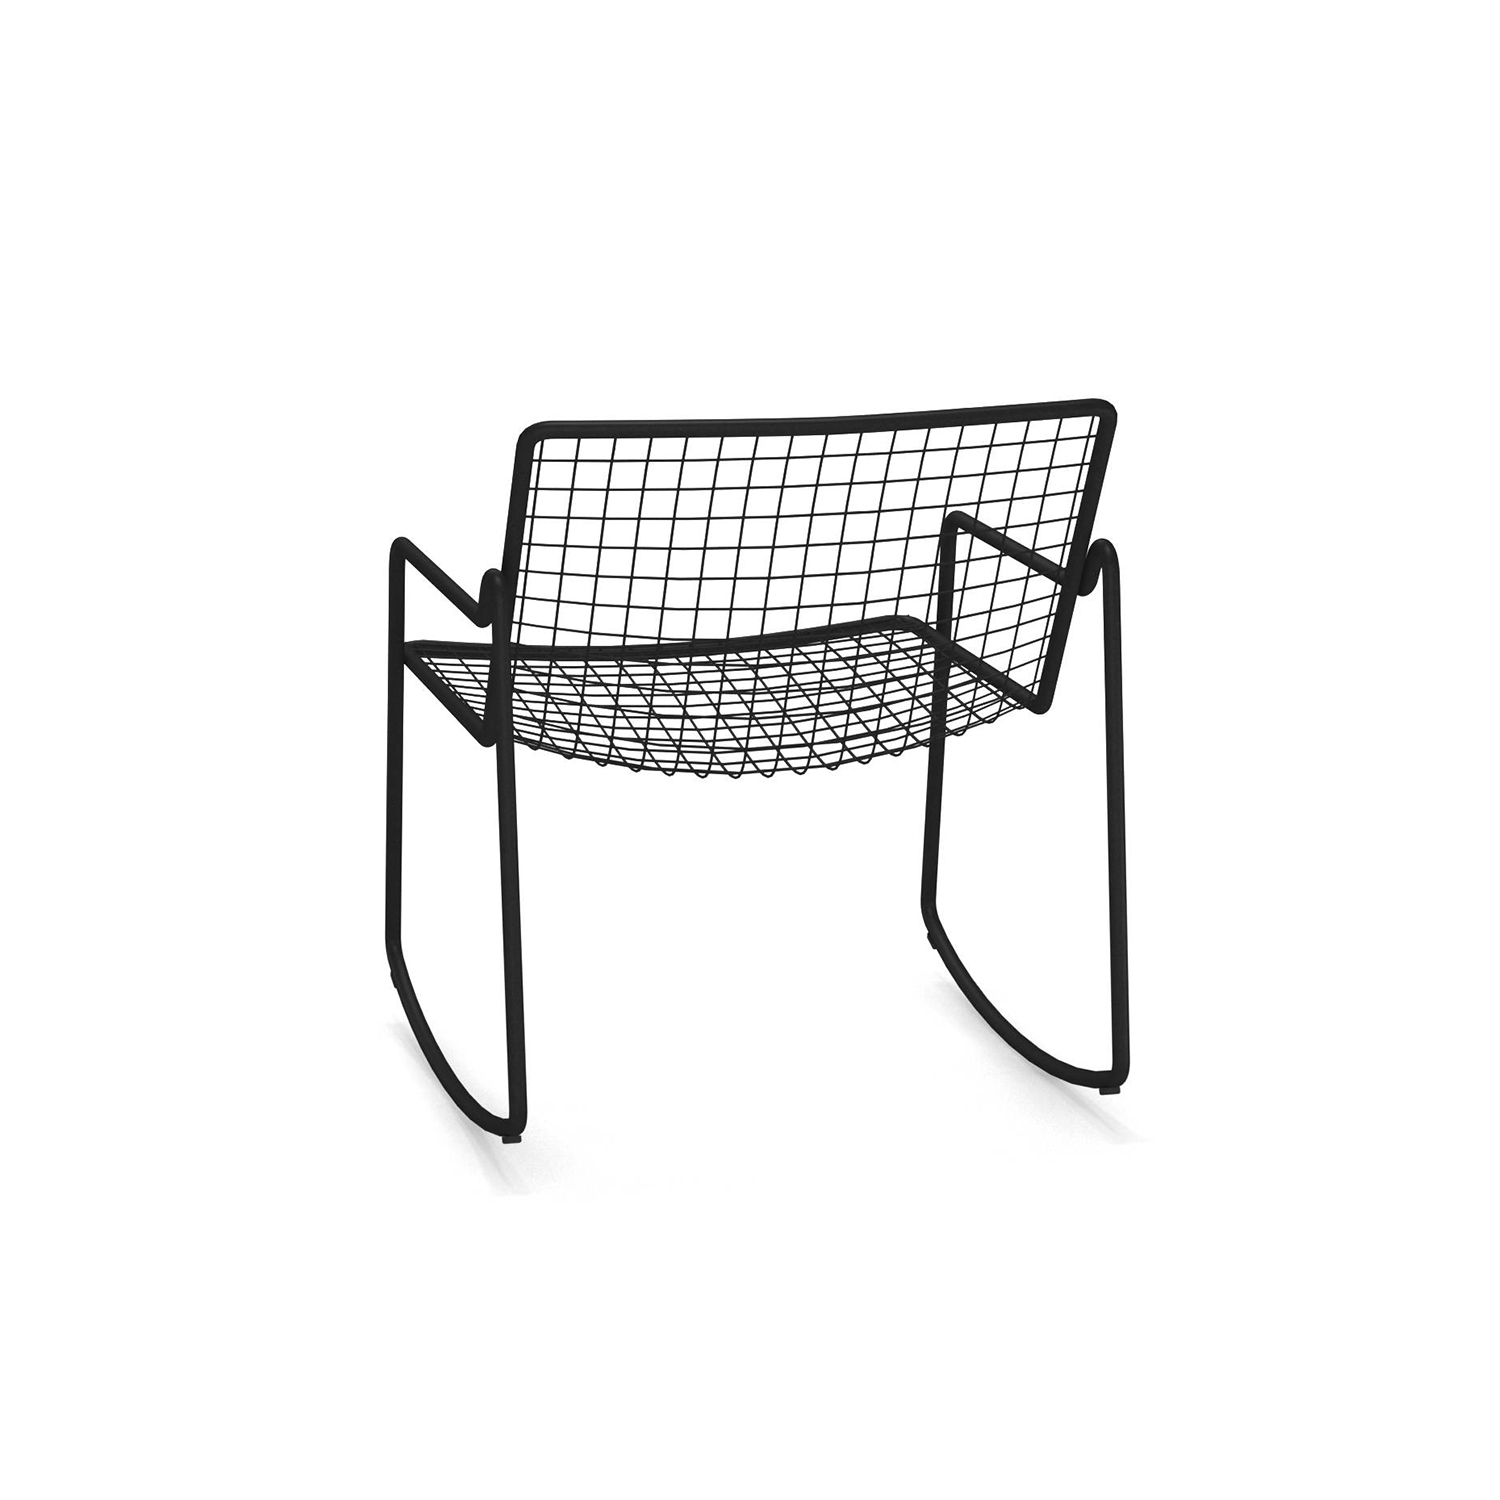 Rio R50 Swing Lounge Chair - <p>RIO R50 is an expertly crafted re-edition of the historic model Rio of the 70s. RIO R50 has a frame in ASFORM steel tube, high-quality steel with high mechanical performance and high resistance to weight. </p>